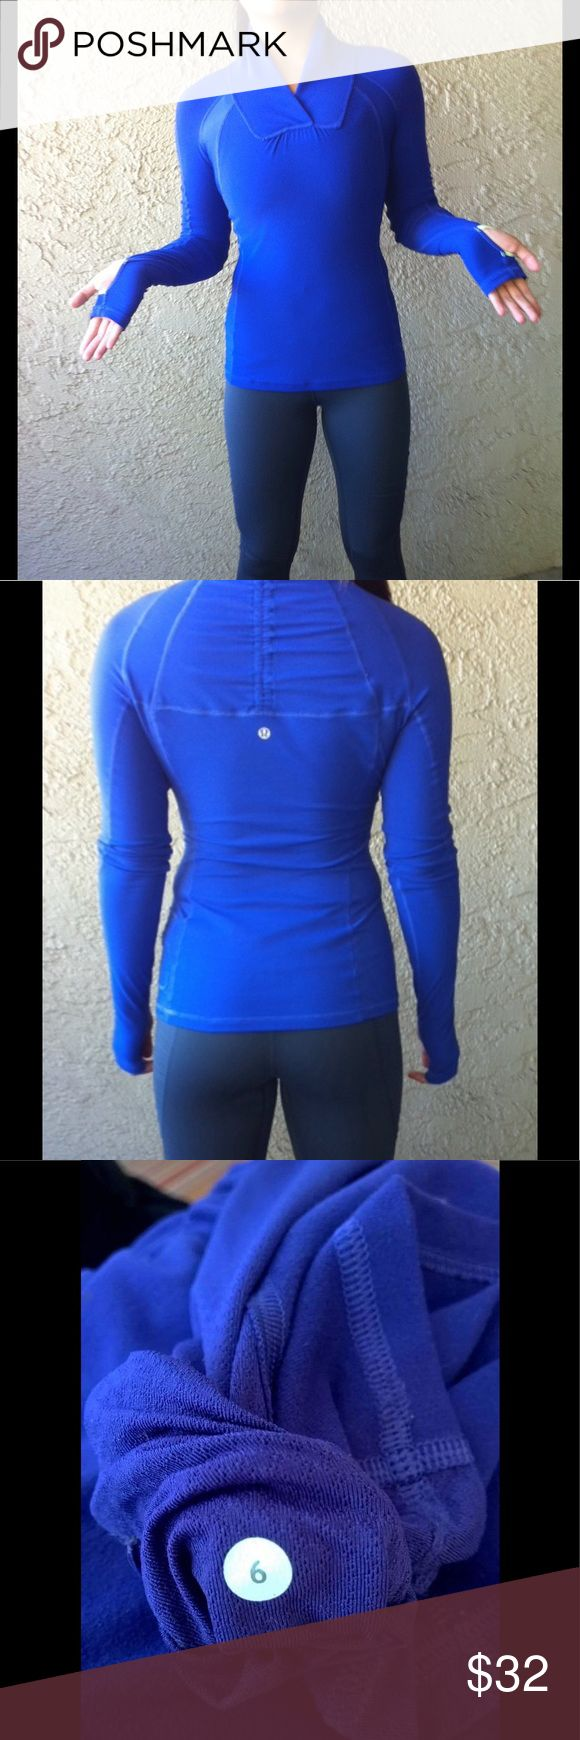 Lululemon Pullover- Thumb holes- size 6 Very cute! Shows sign of use throughout. No holes rips or stains. Size 6 dot located in pocket and show in photos. Has thumb holes. Pocket thread was rubbed and has fuzzies as seen in photos, doesn't effect use, probably could have it gone over at a dry cleaners. Color is a blue/purple blend. Priced in consideration of thread on pocket seam area.  030 lululemon athletica Jackets & Coats